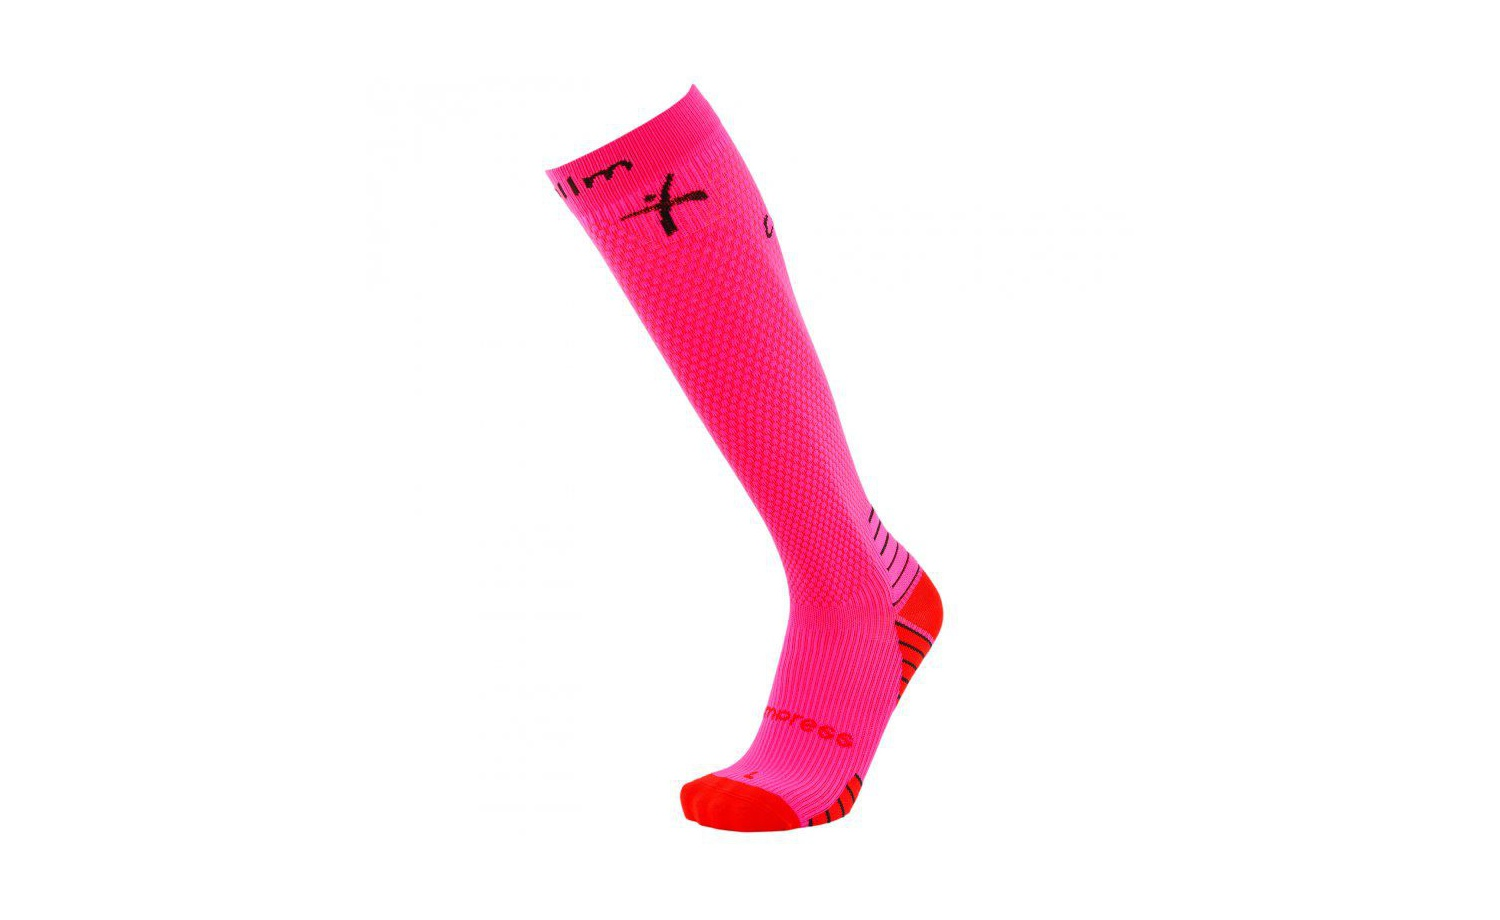 COLLM RUN PRO women's compression knee socks